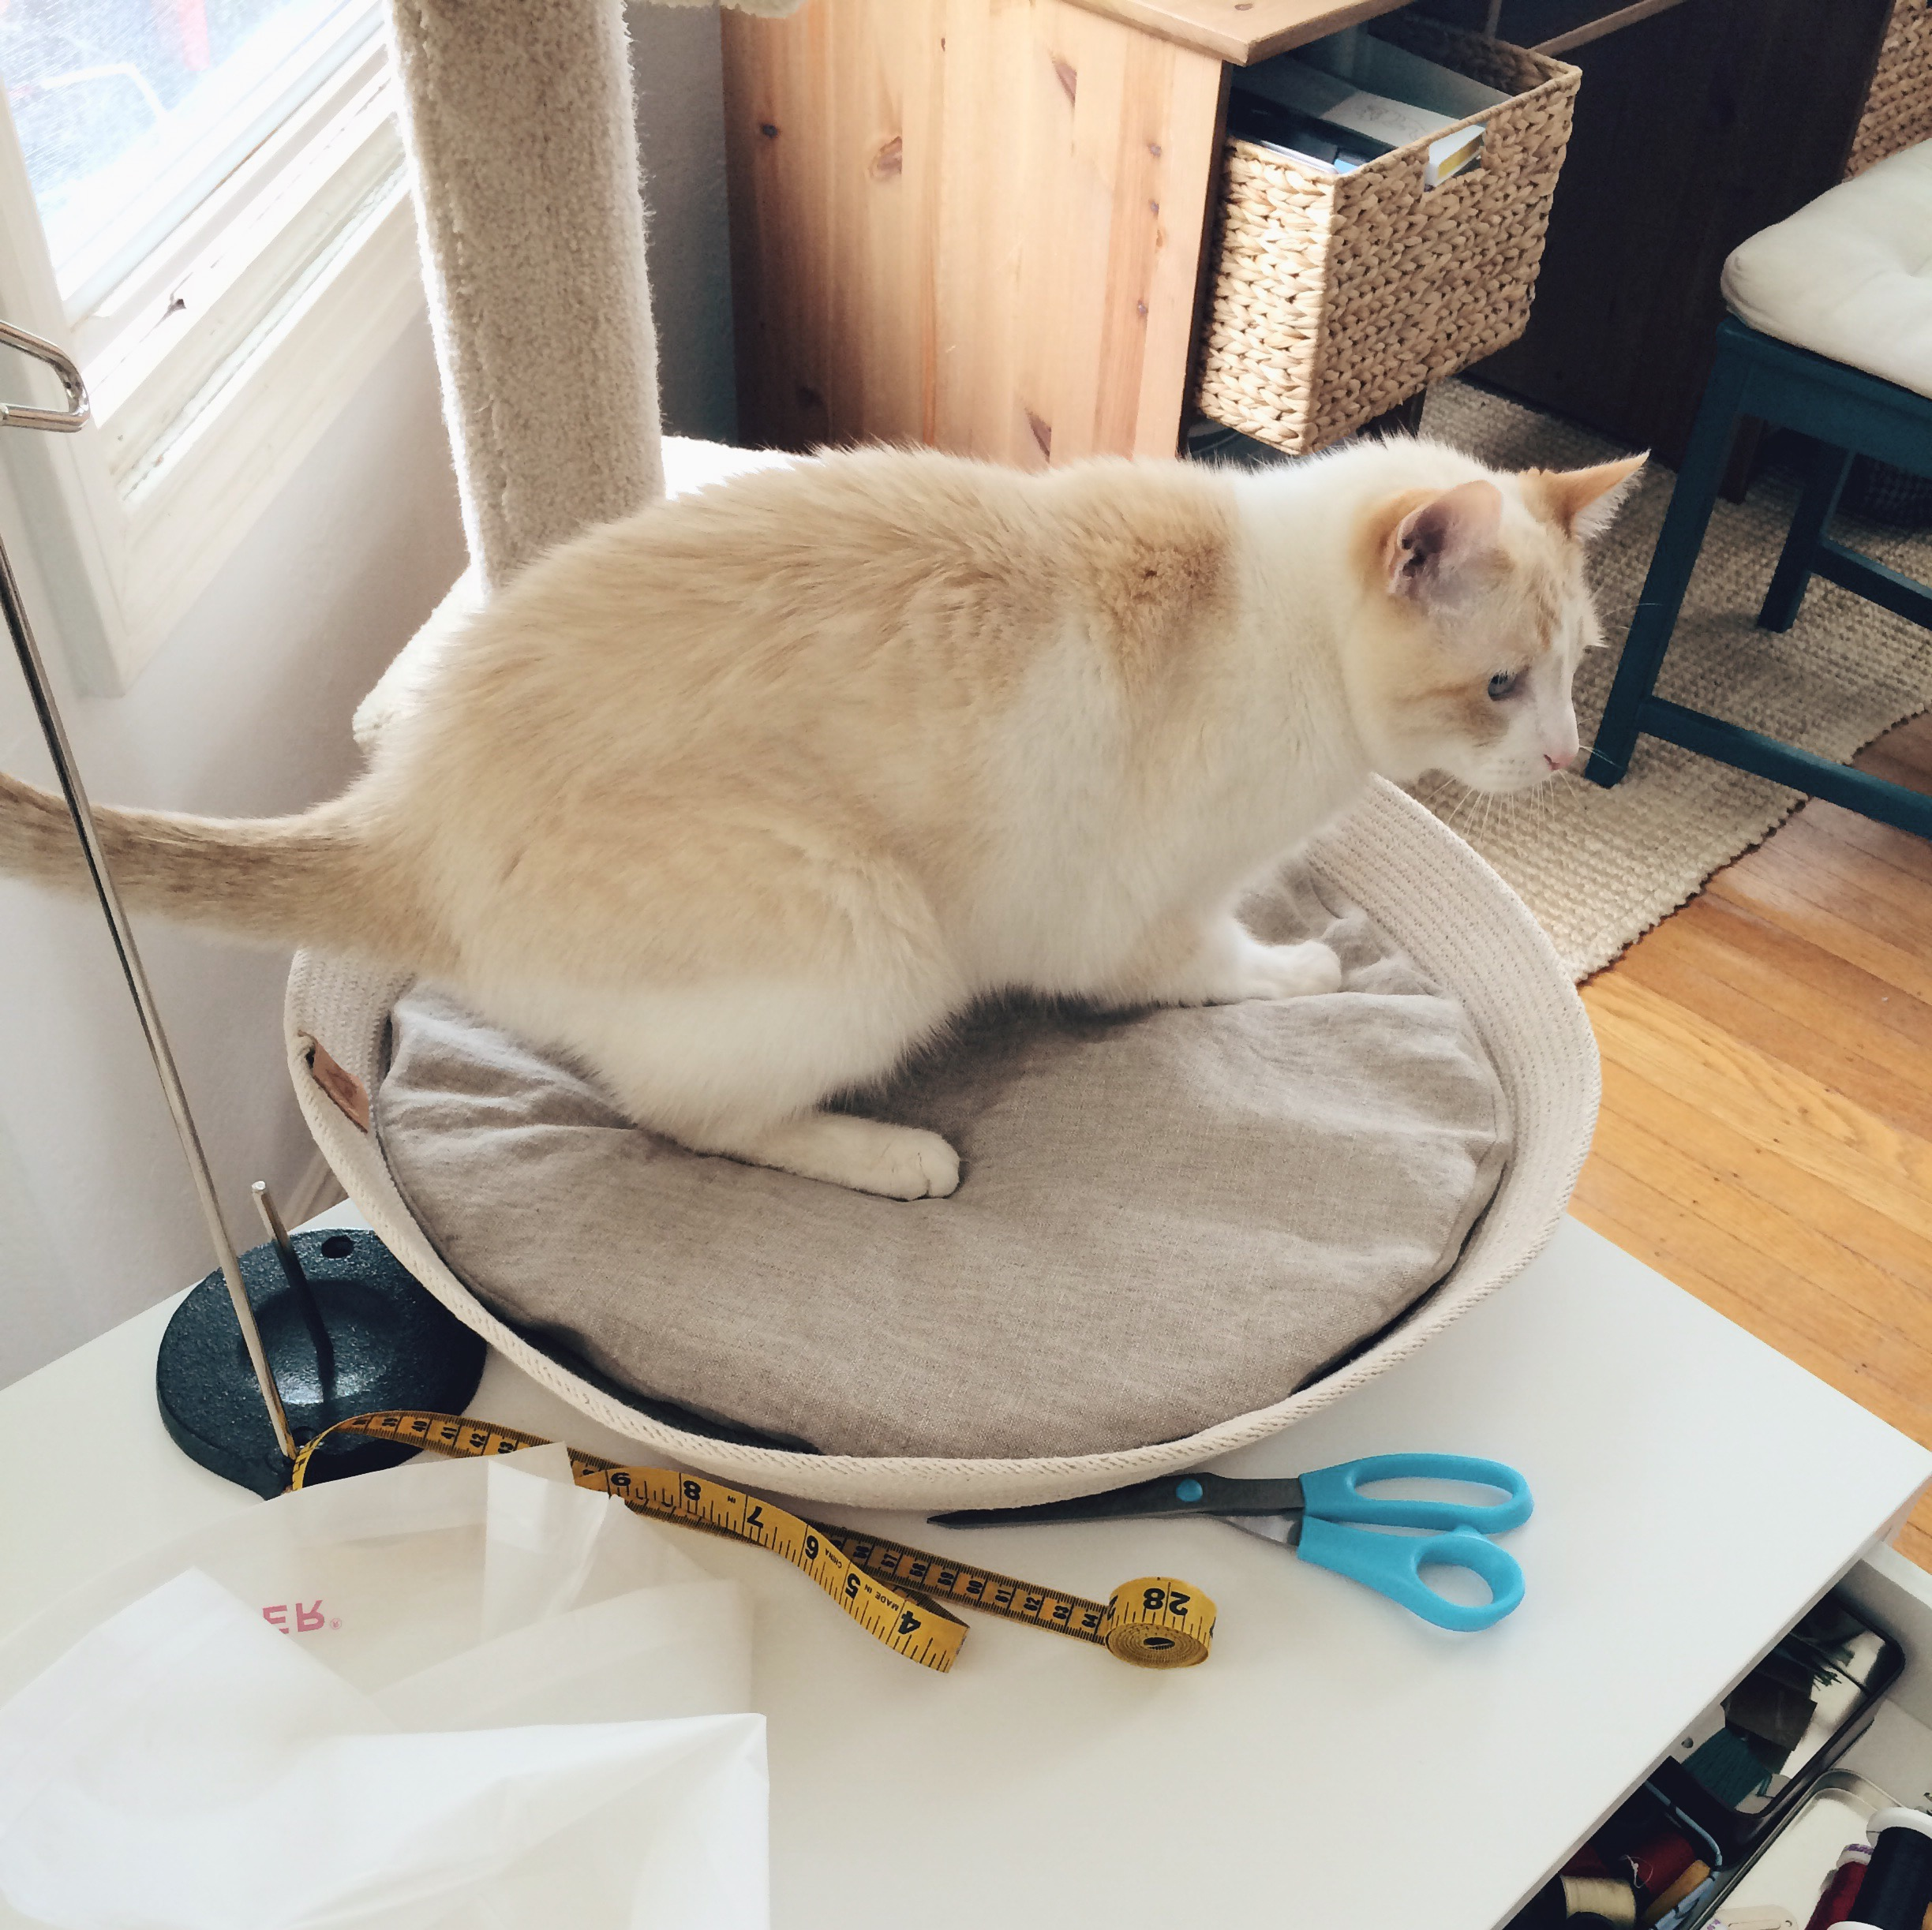 Bollini begins with an impromotu test. Hedoesn't even wait for the bed to be placed on the floor, as he believesa good cat bed should be suitable to sleep in anywhere.